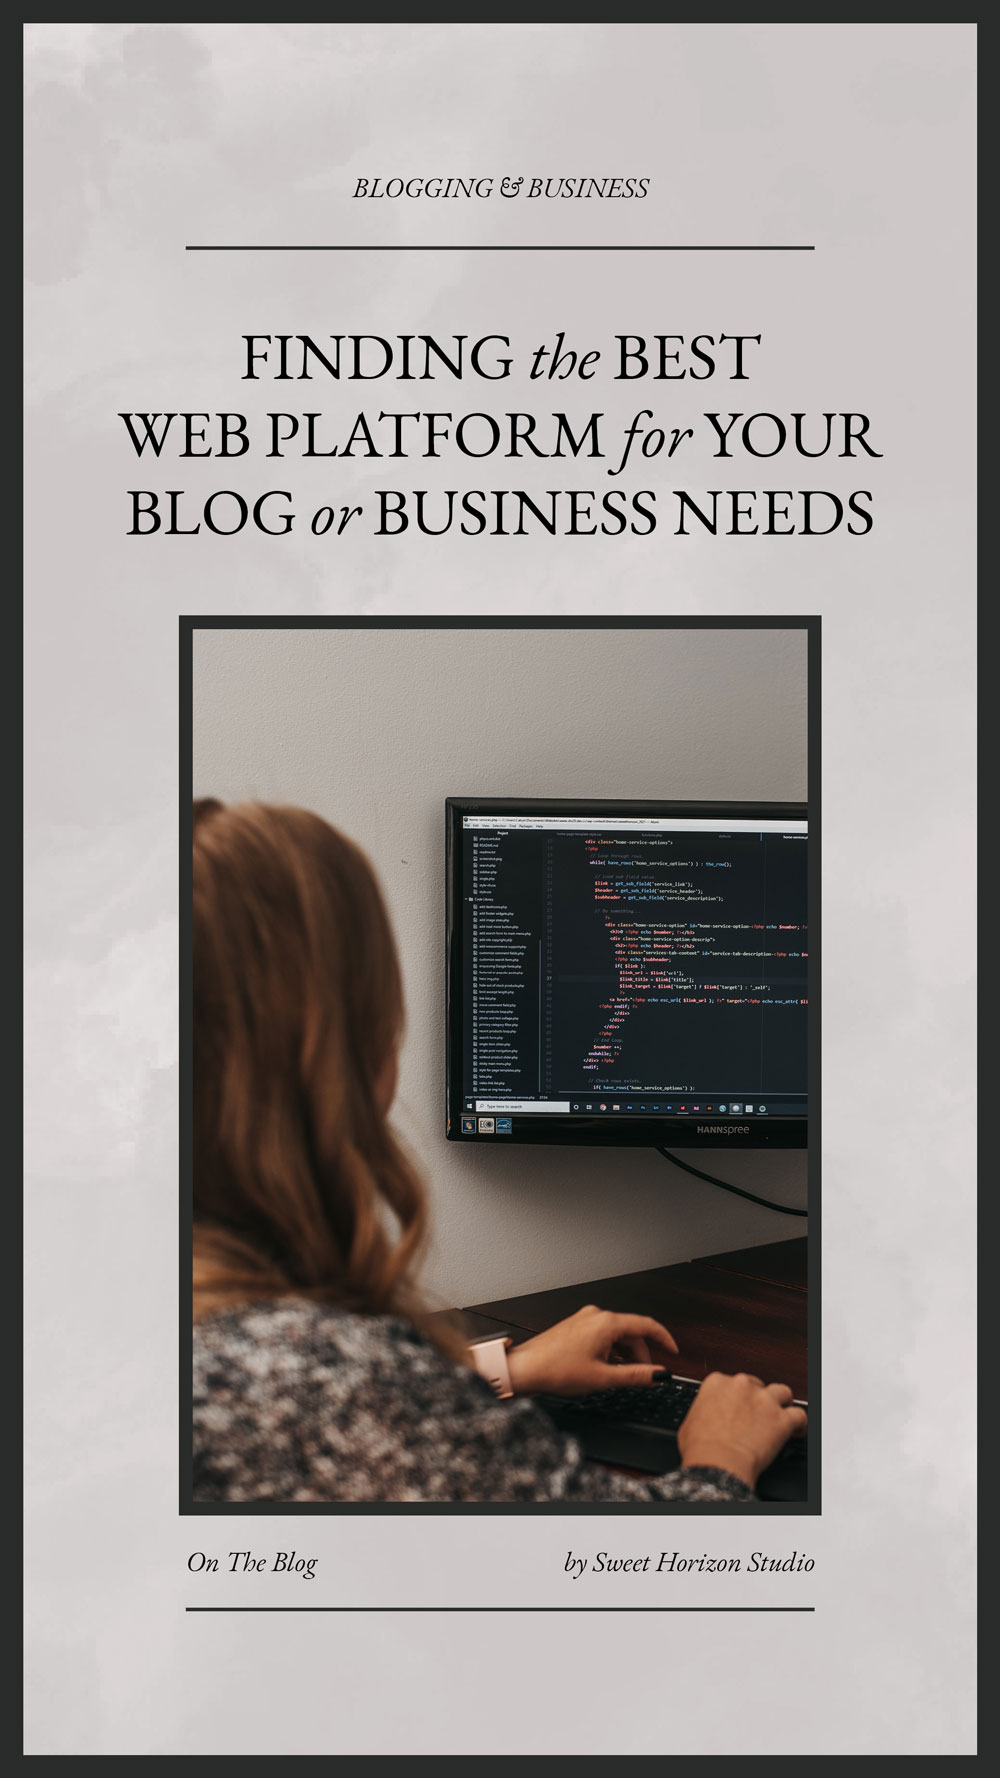 Finding the best web platform for your blog or business needs from www.sweethorizonblog.com